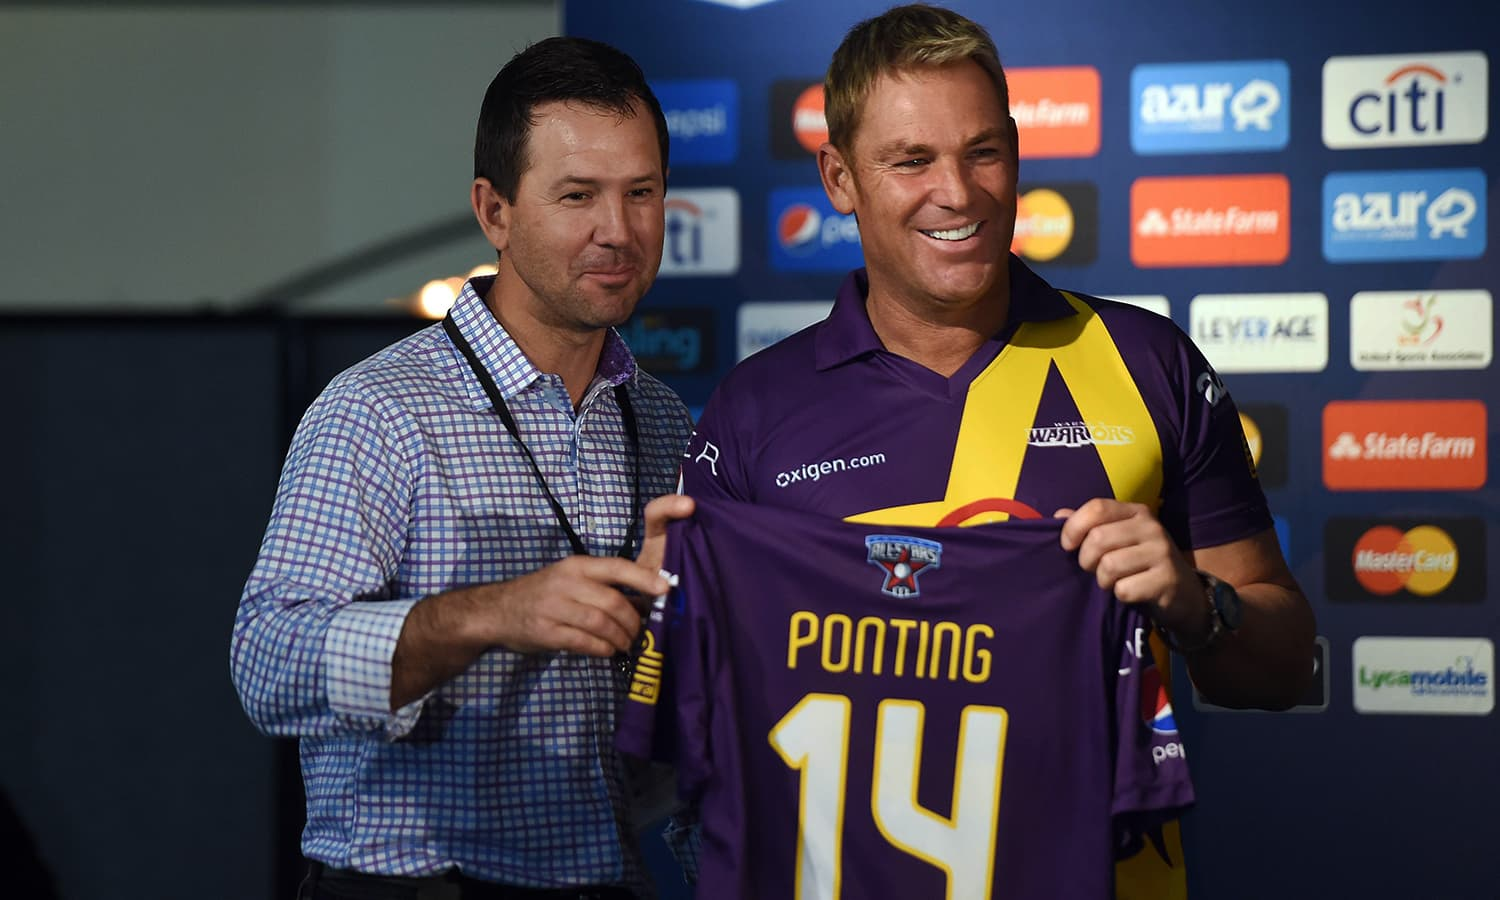 "Australia's Shane Warne (R) and Ricky Ponting pose during a press conference in New York on November 5, 2015. Retired Indian cricketer Sachin Tendulkar and Warne will lead a lineup of renowned cricket players from around the world in the inaugural ""Cricket All-Stars,"" a three-game series to be played in Major League Baseball stadiums in New York , Houston and Los Angeles, to promote cricket the US. AFP PHOTO/JEWEL SAMAD"